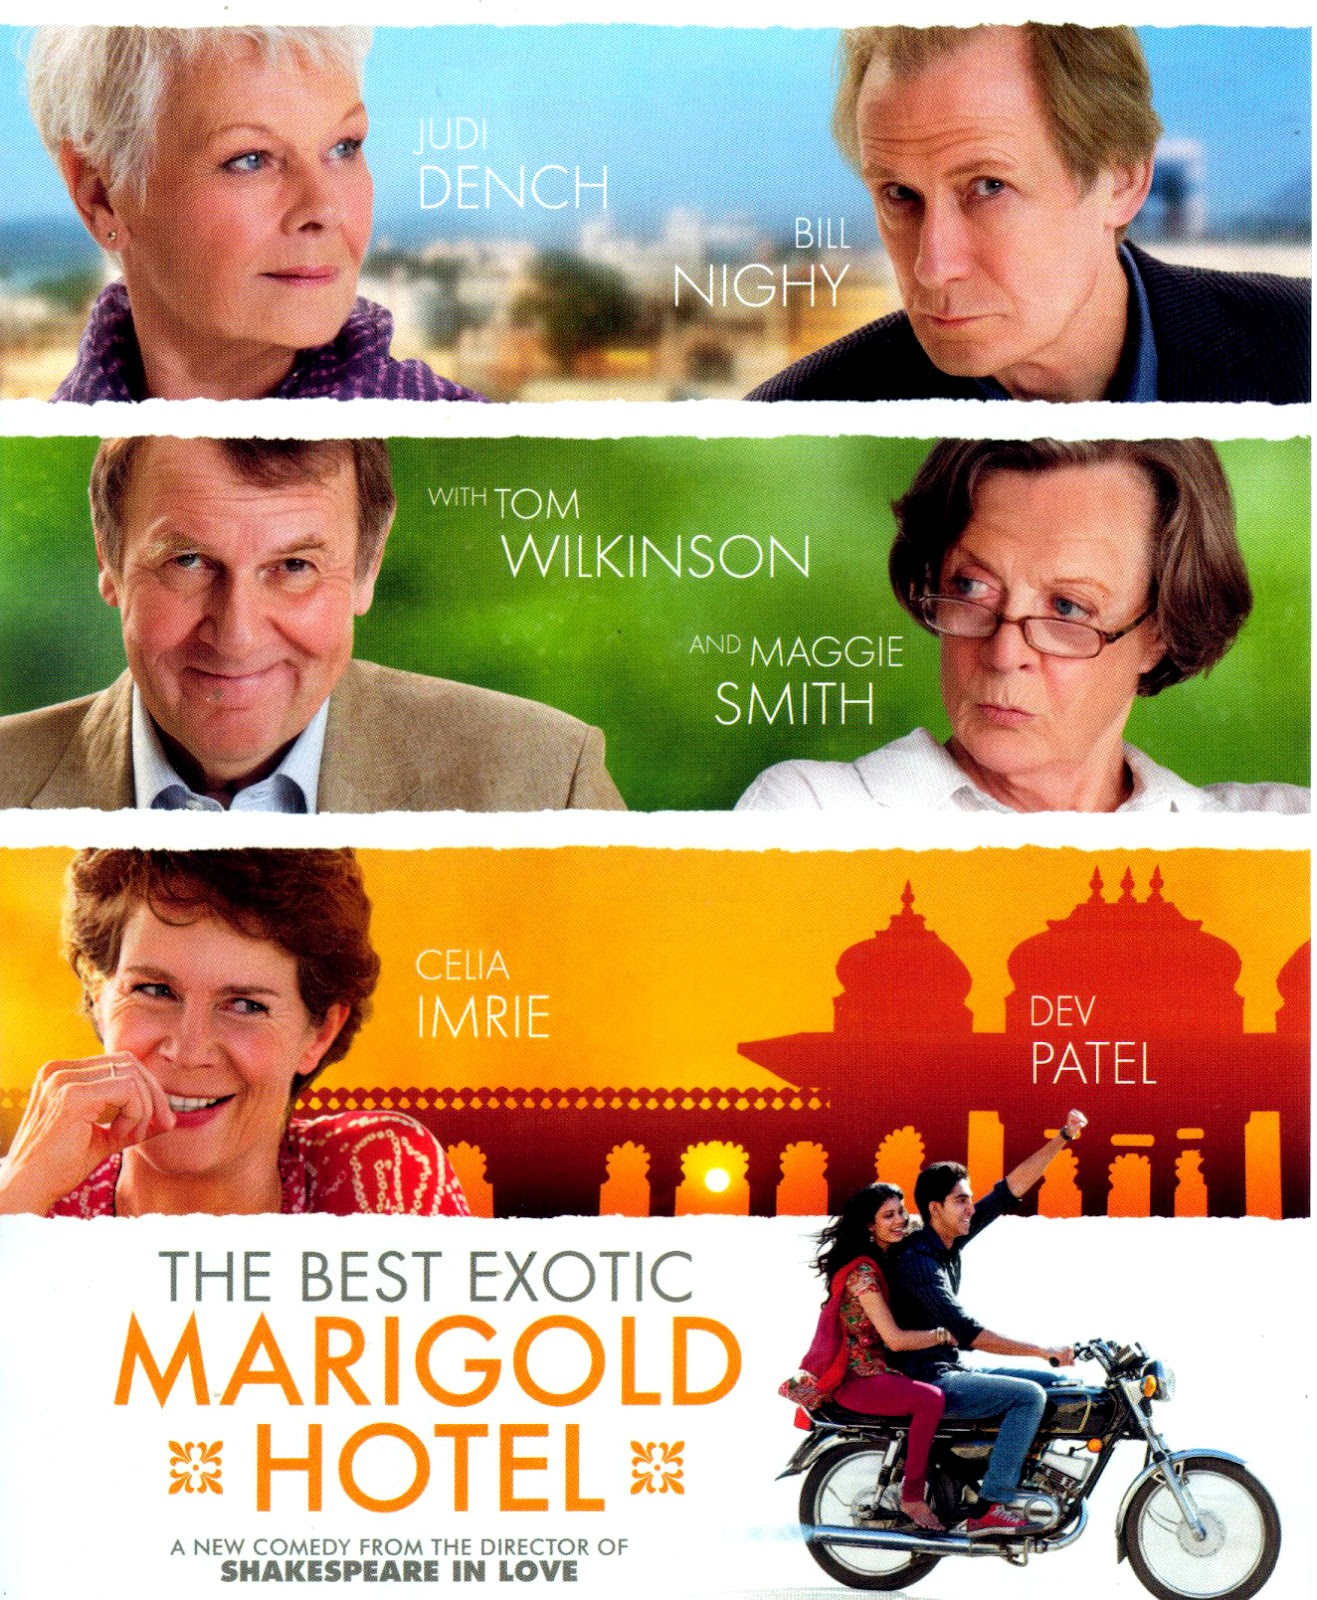 The second best exotic marigold hotel 2015 trailer